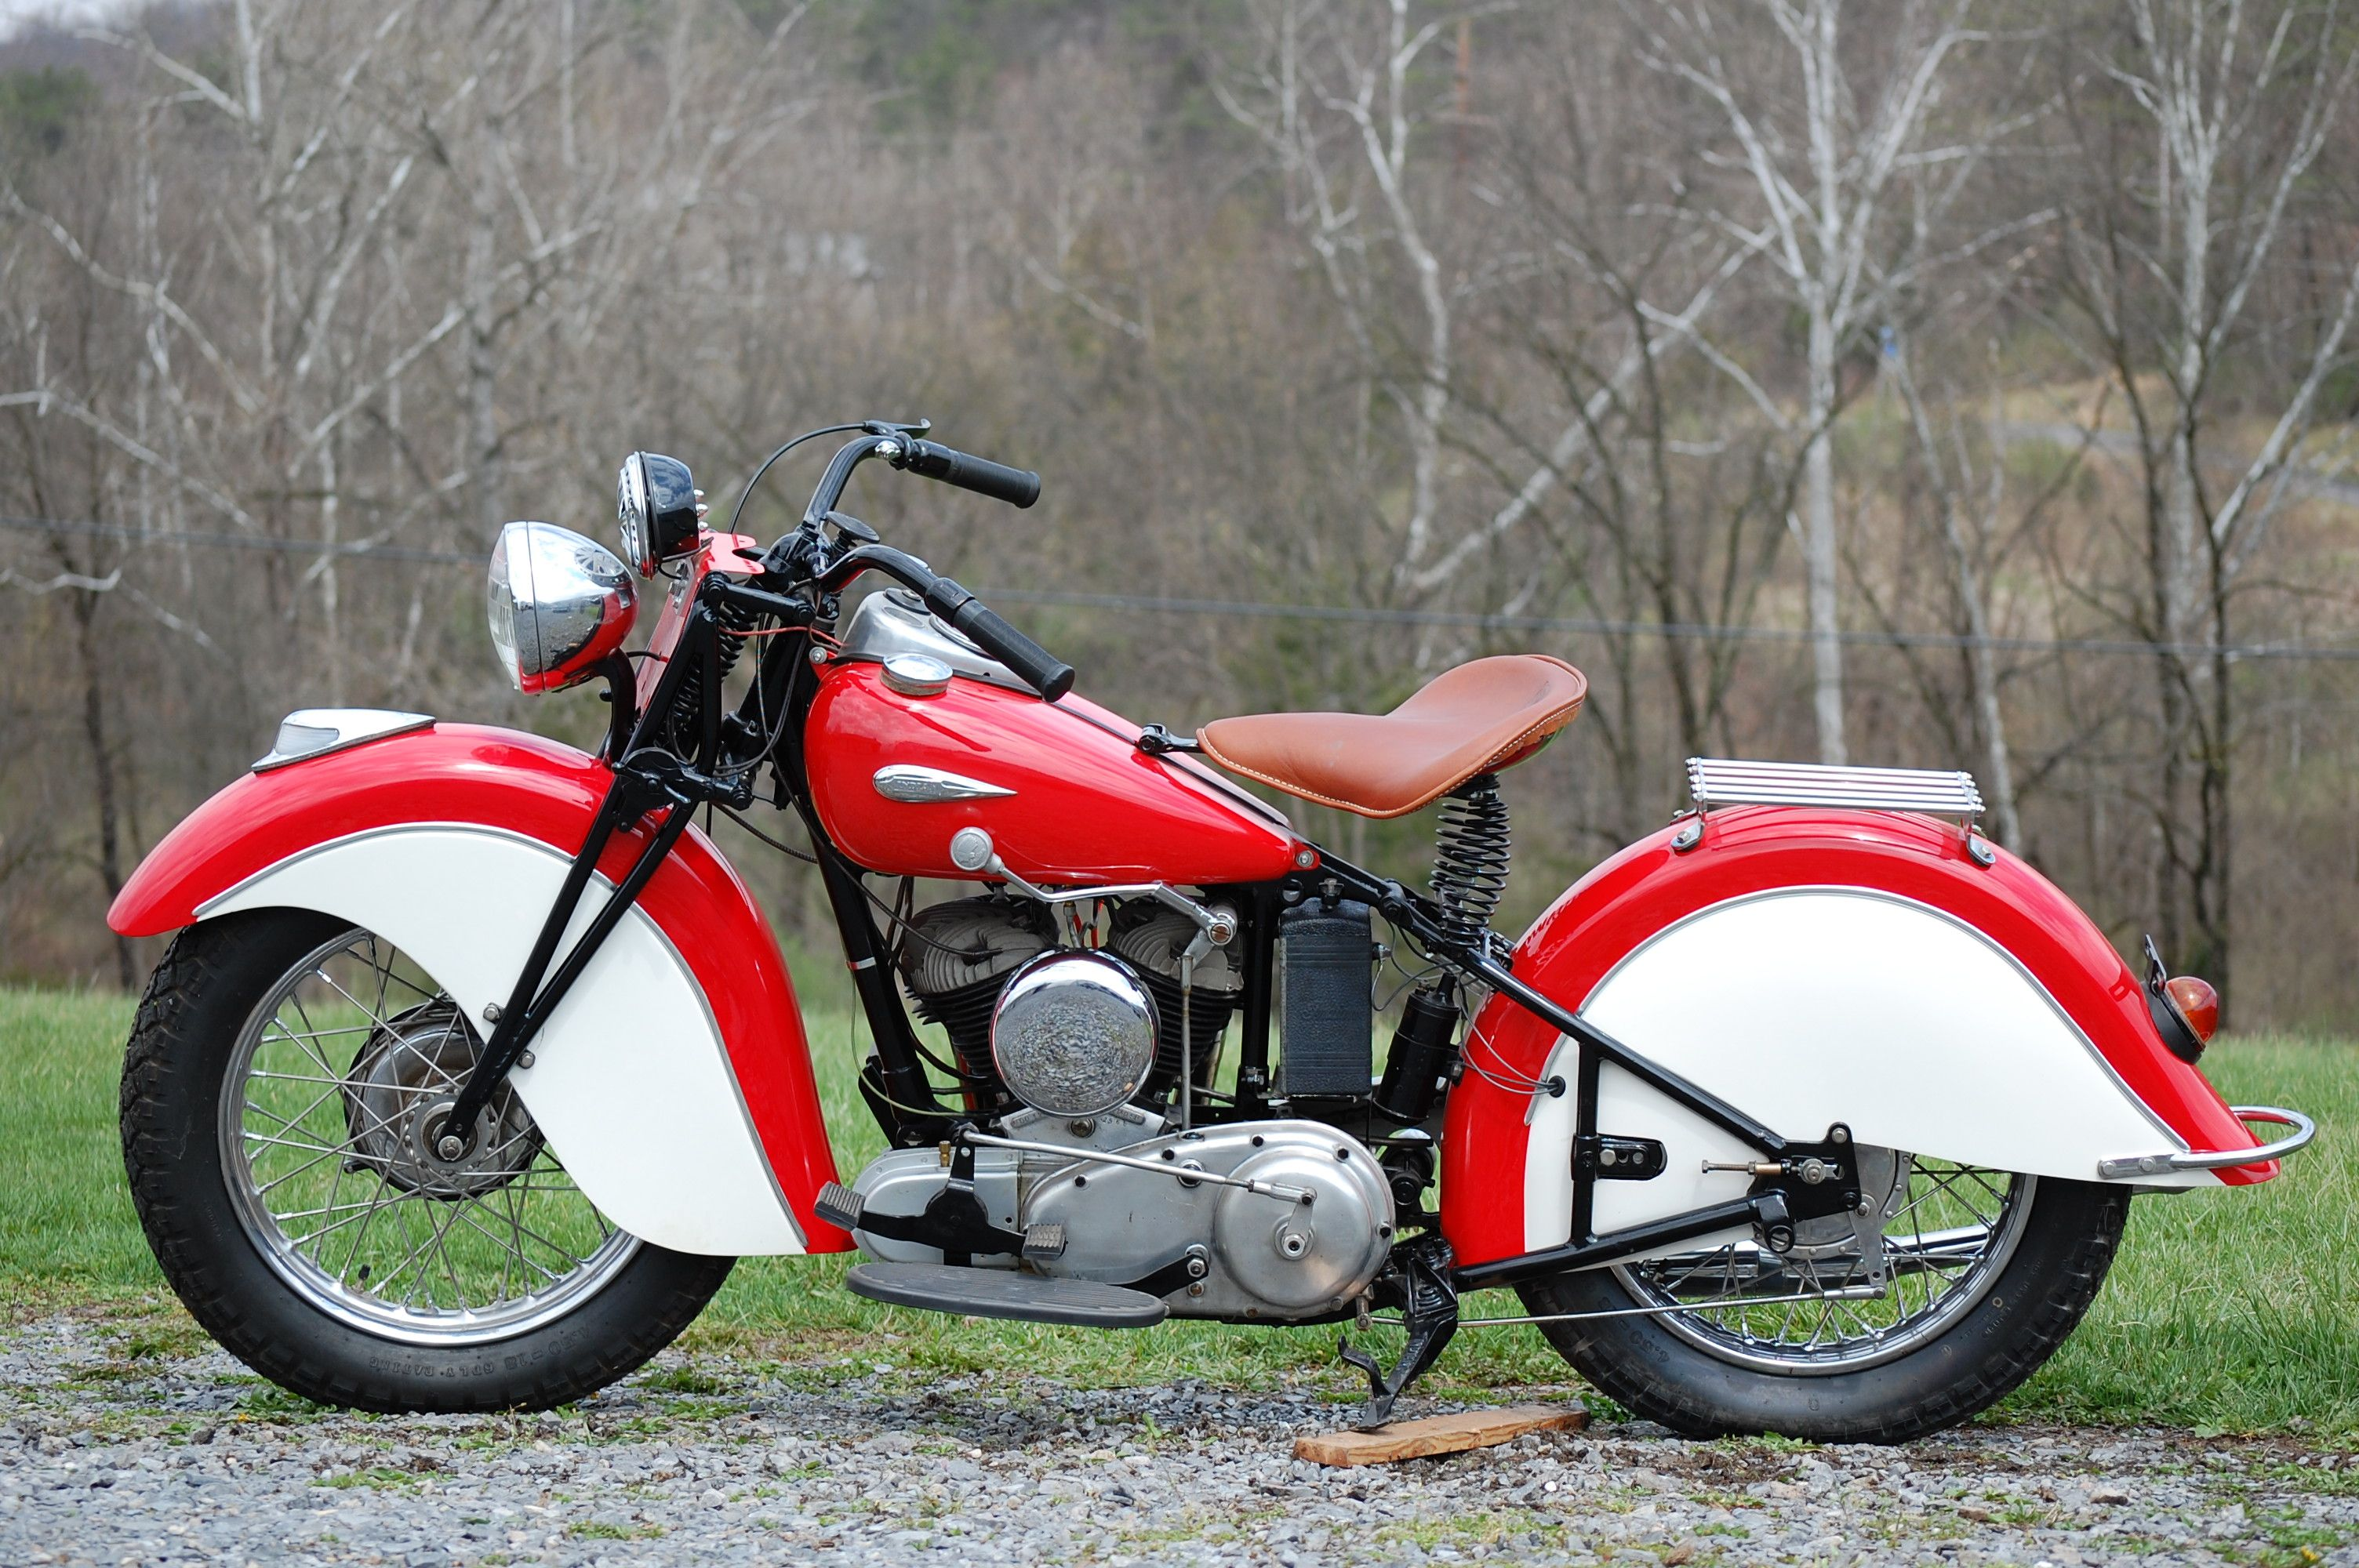 1936 1940 Conversion Indian Sport Scout Indian Motorcycle Motorcycle Indian Scout